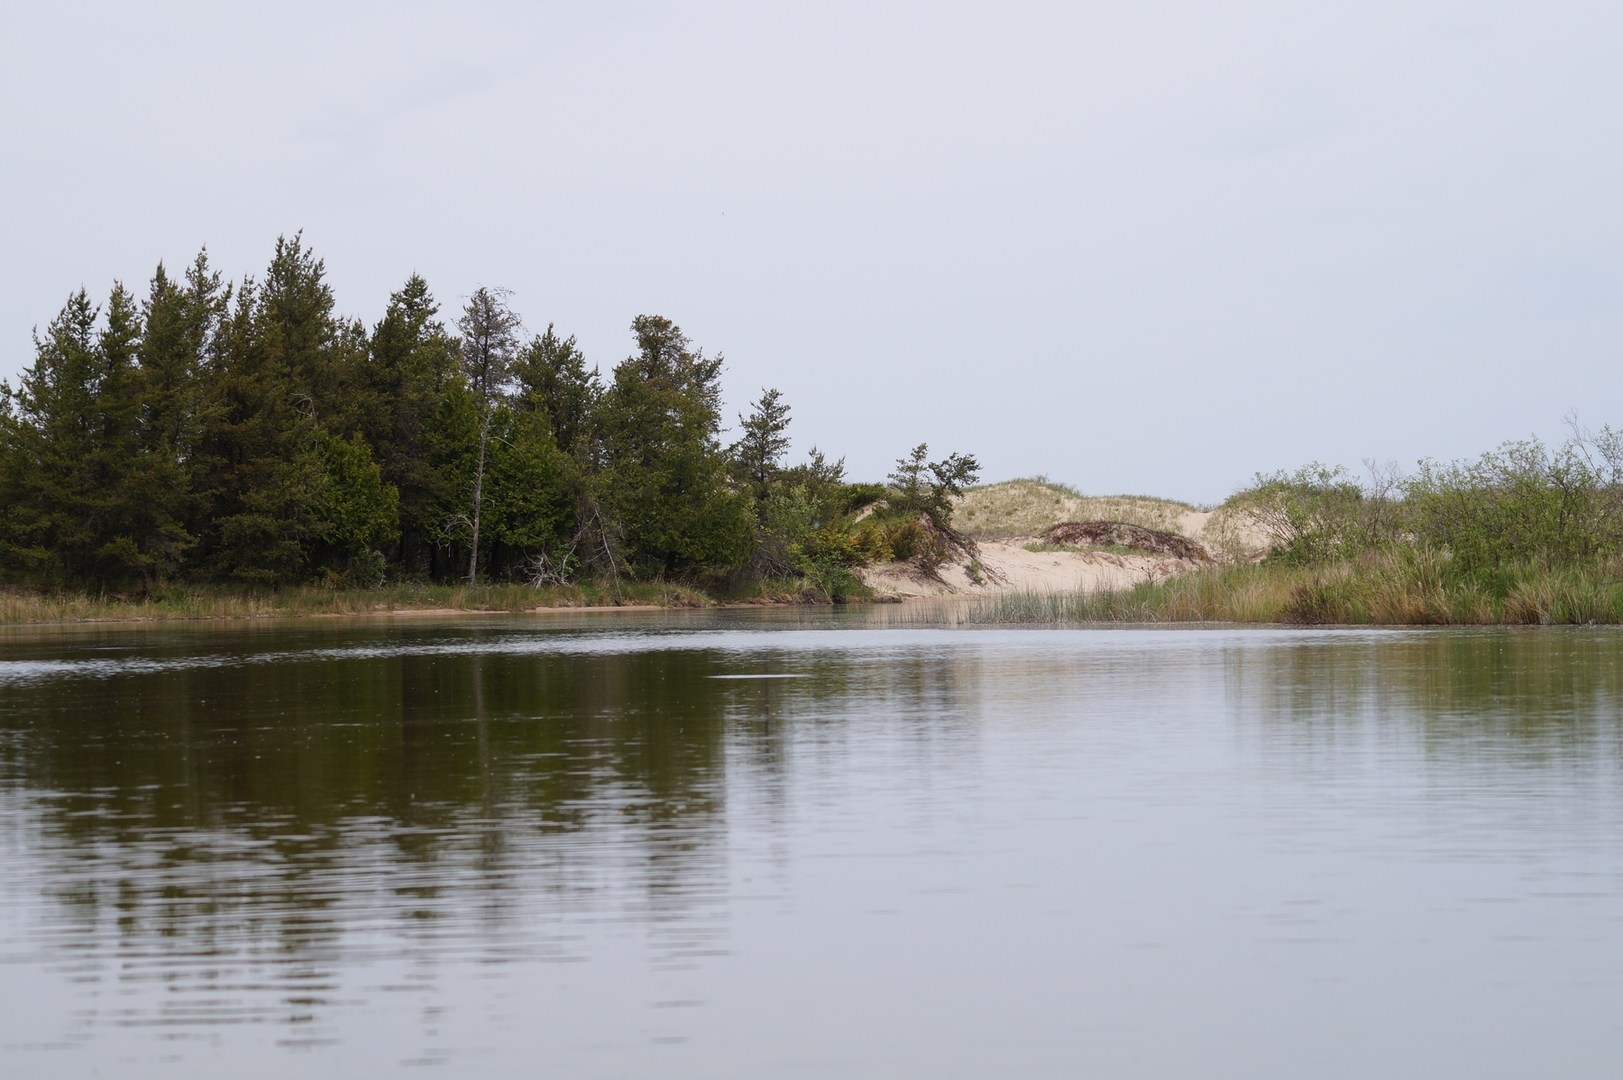 ... Sand dunes as the river winds to its outlet into Lake Michigan.